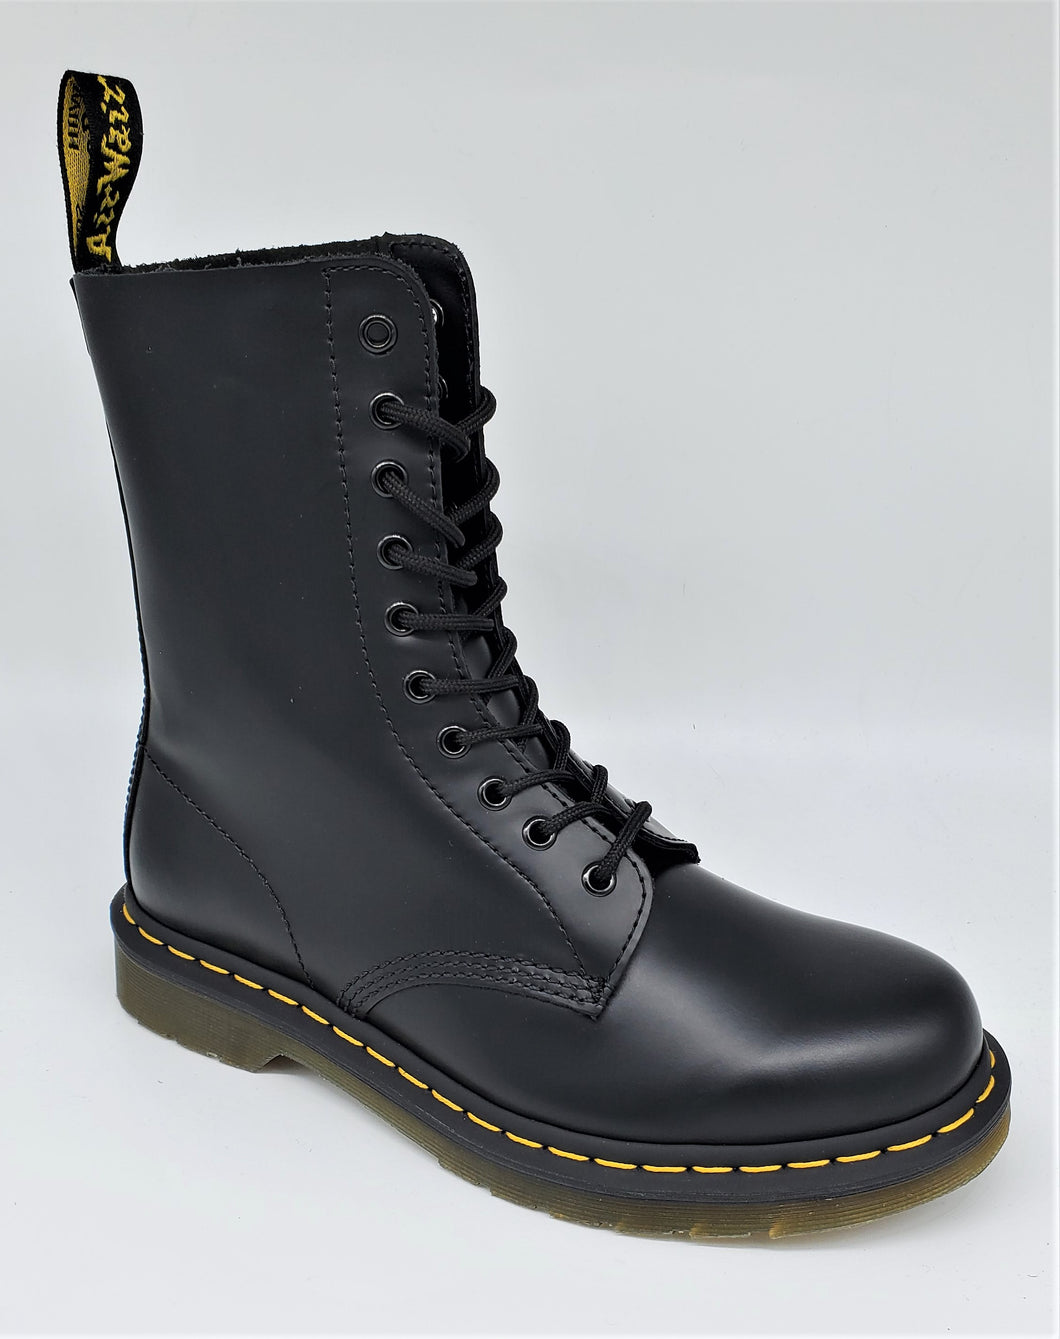 Dr. Martens 1490 Black Smooth